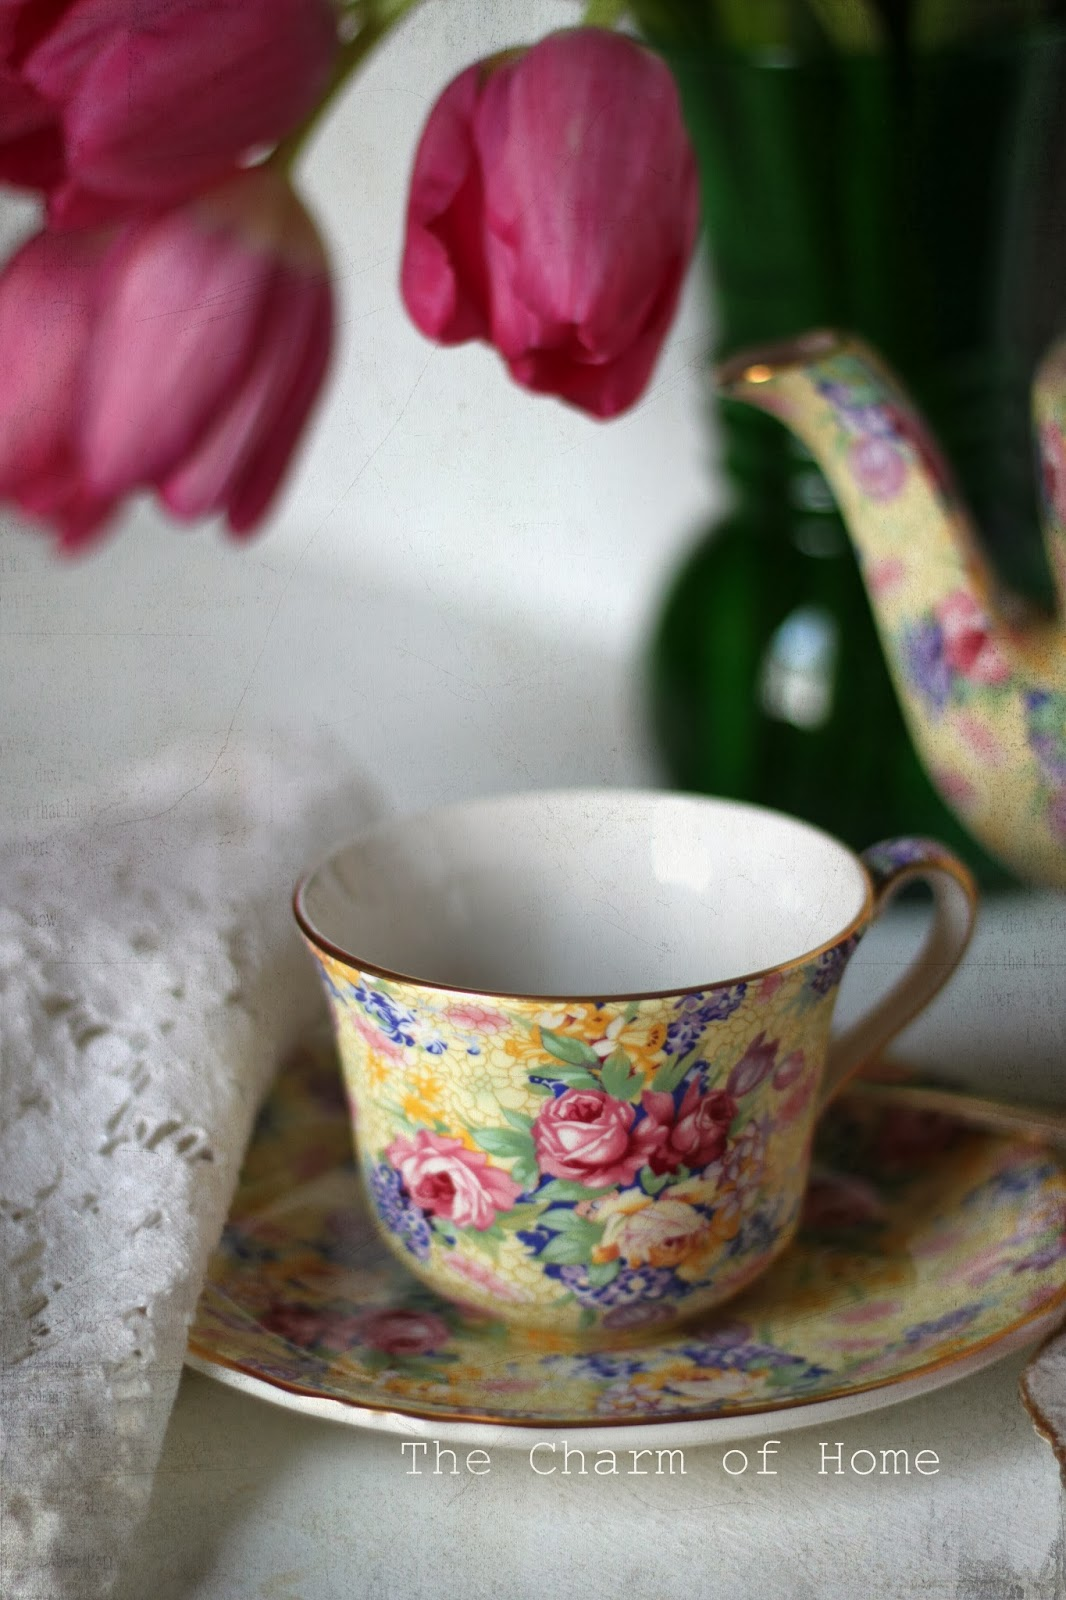 Spring Tea, The Charm of Home